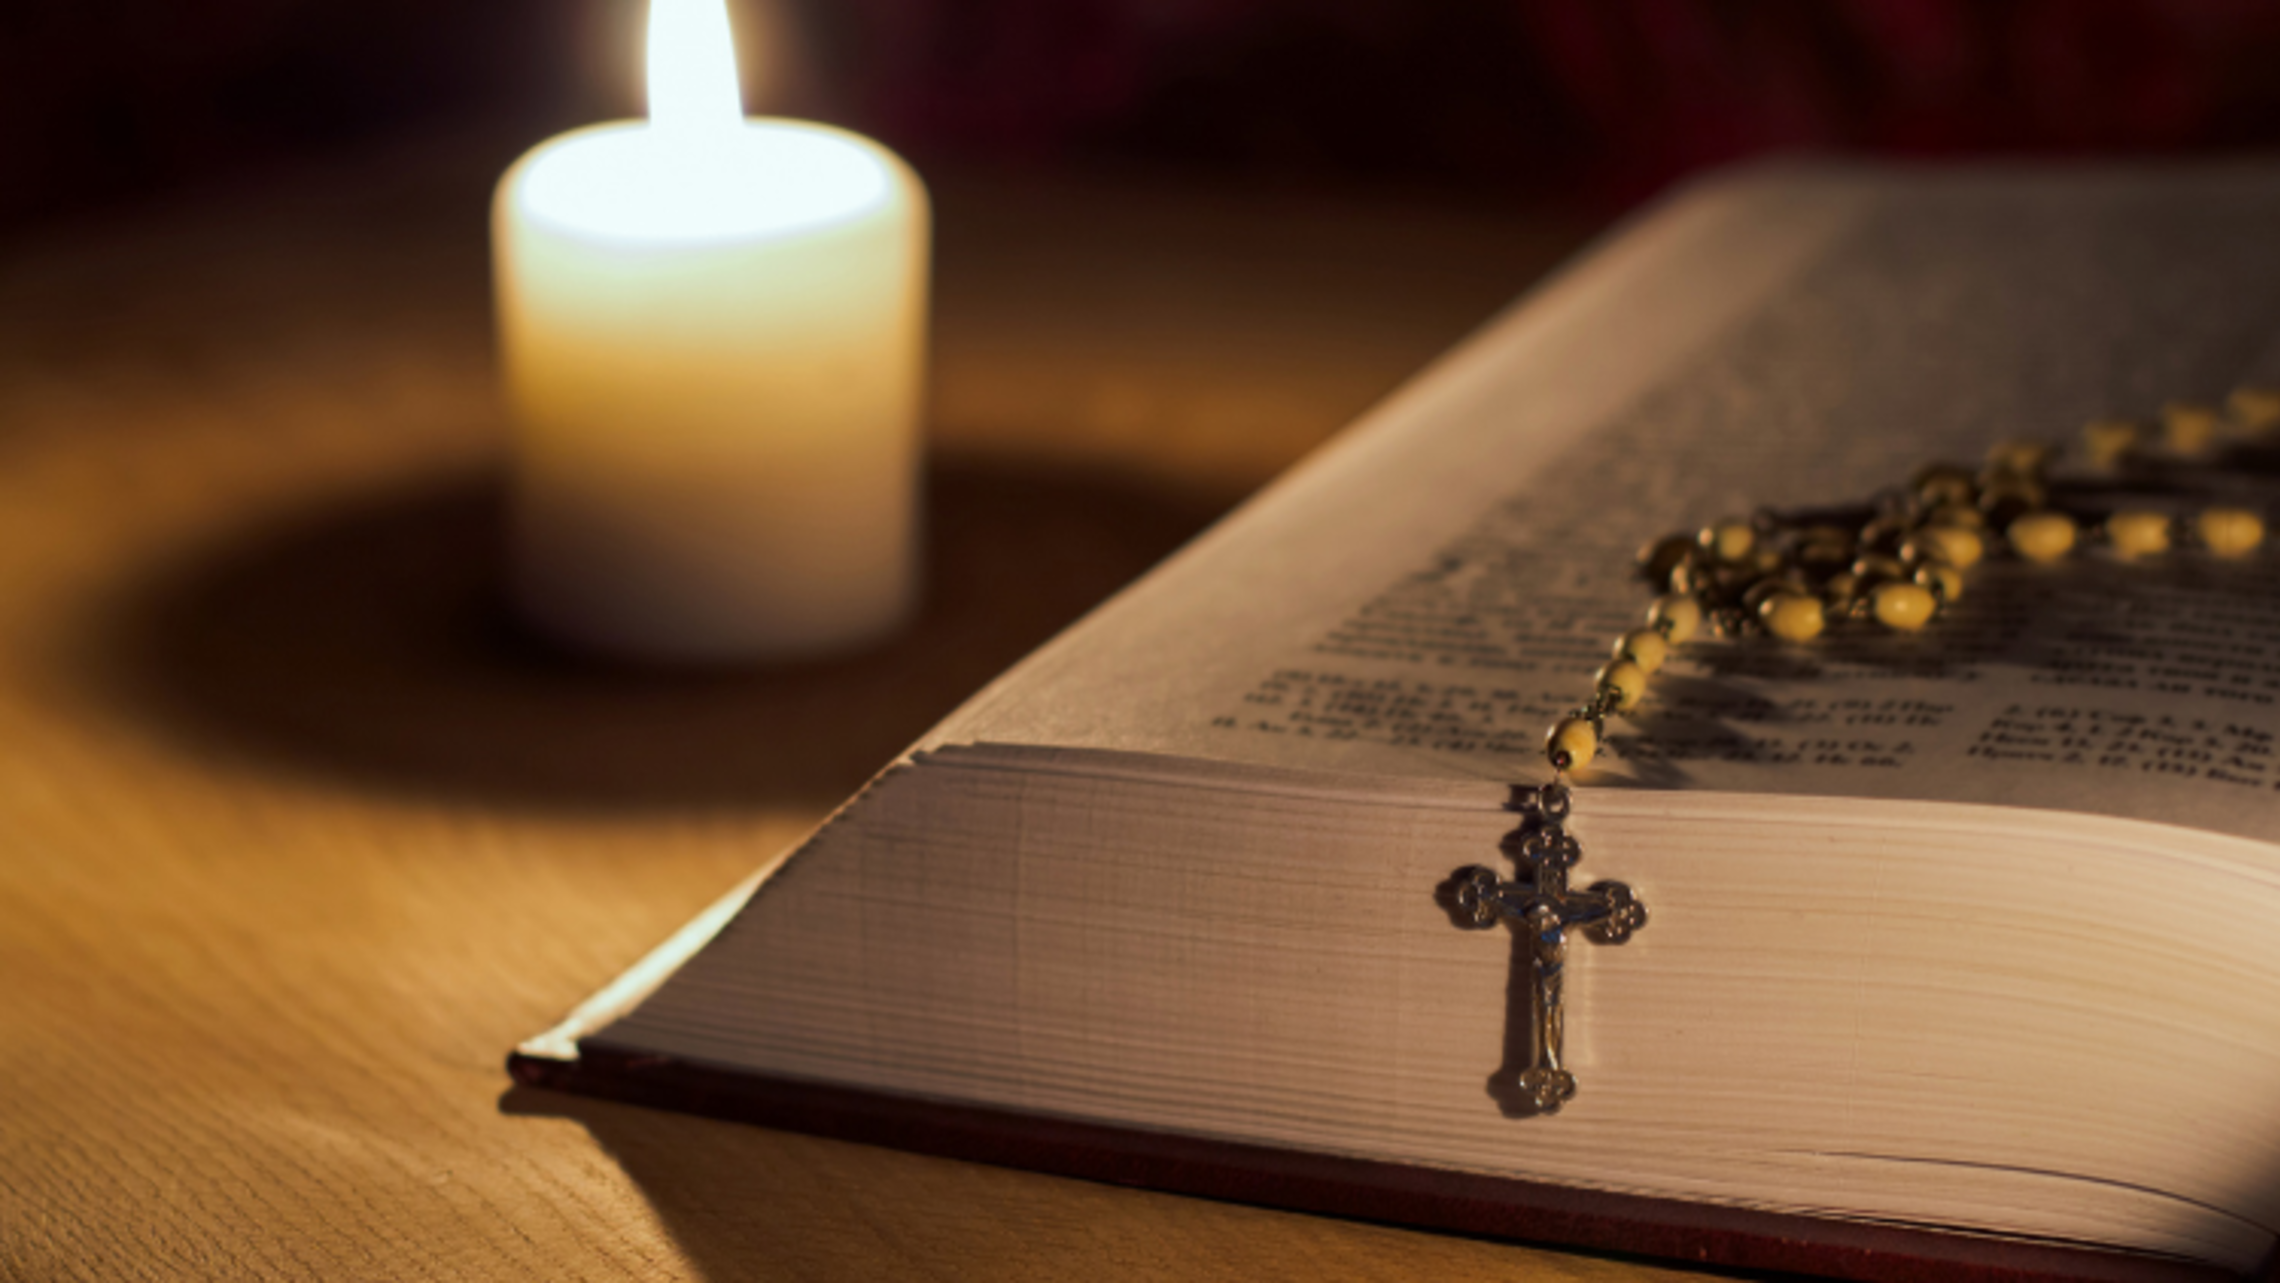 Praying the Rosary for Vocations